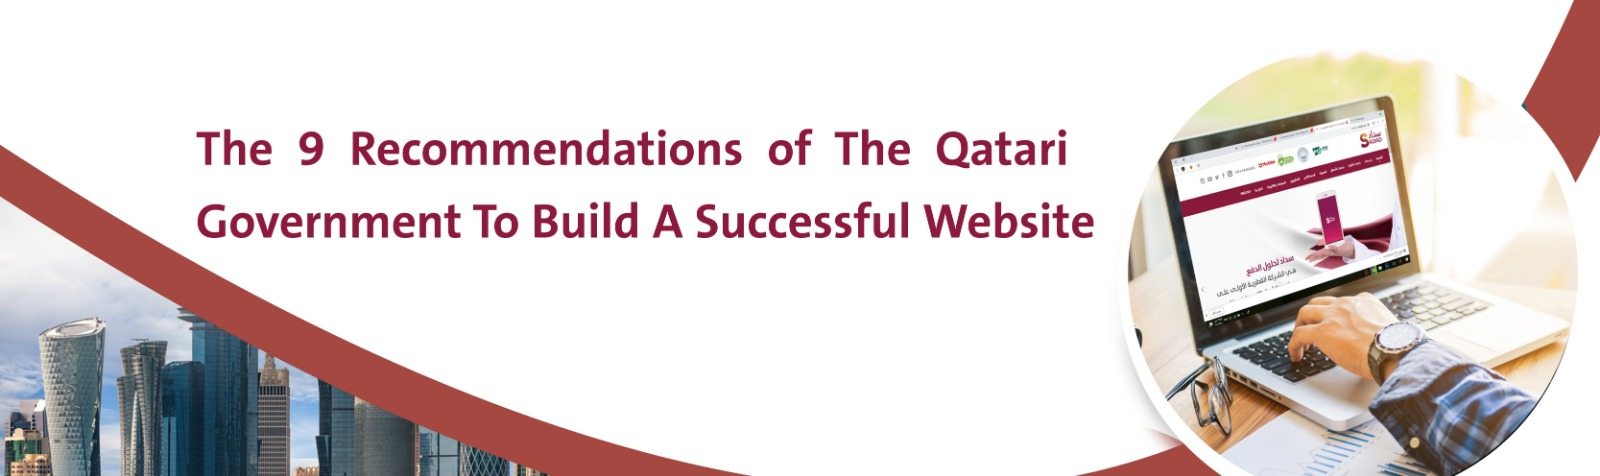 The 9 Recommendations of The Qatari Government To Build A Successful Website - Sadad Payment Solutions - Sadad.qa - banner